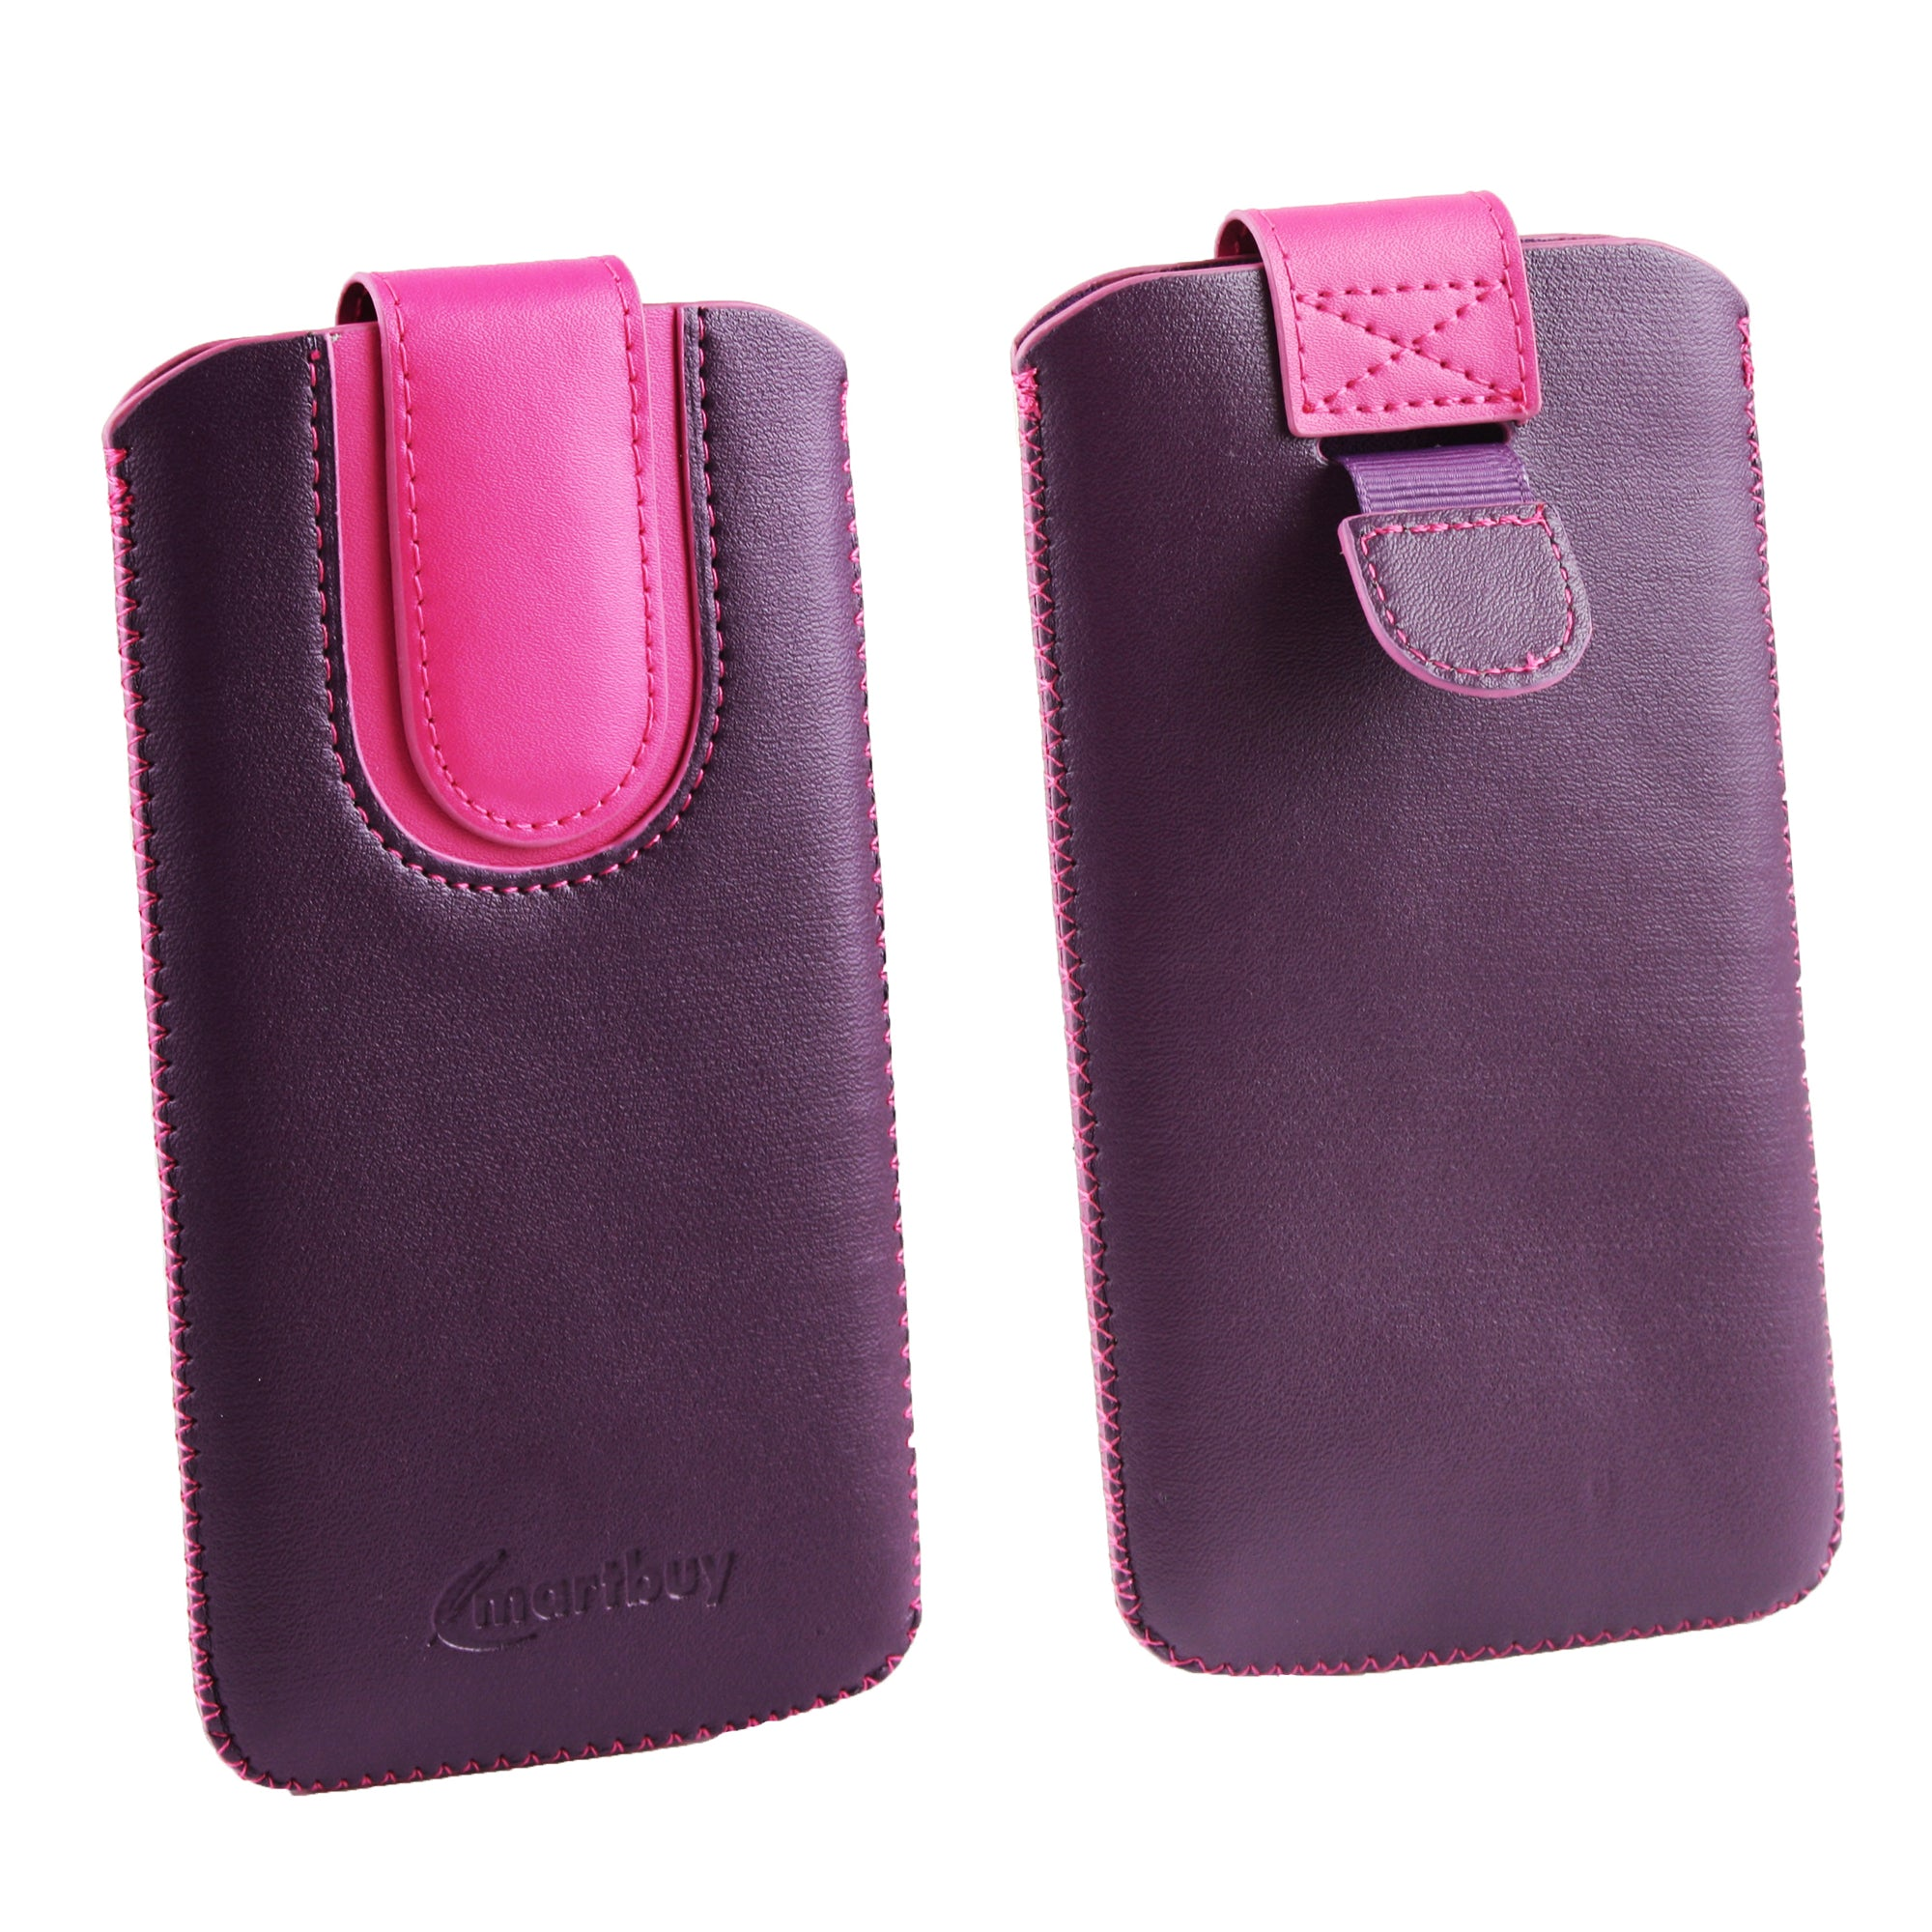 Universal Phone Pouch - Purple Pink Plain